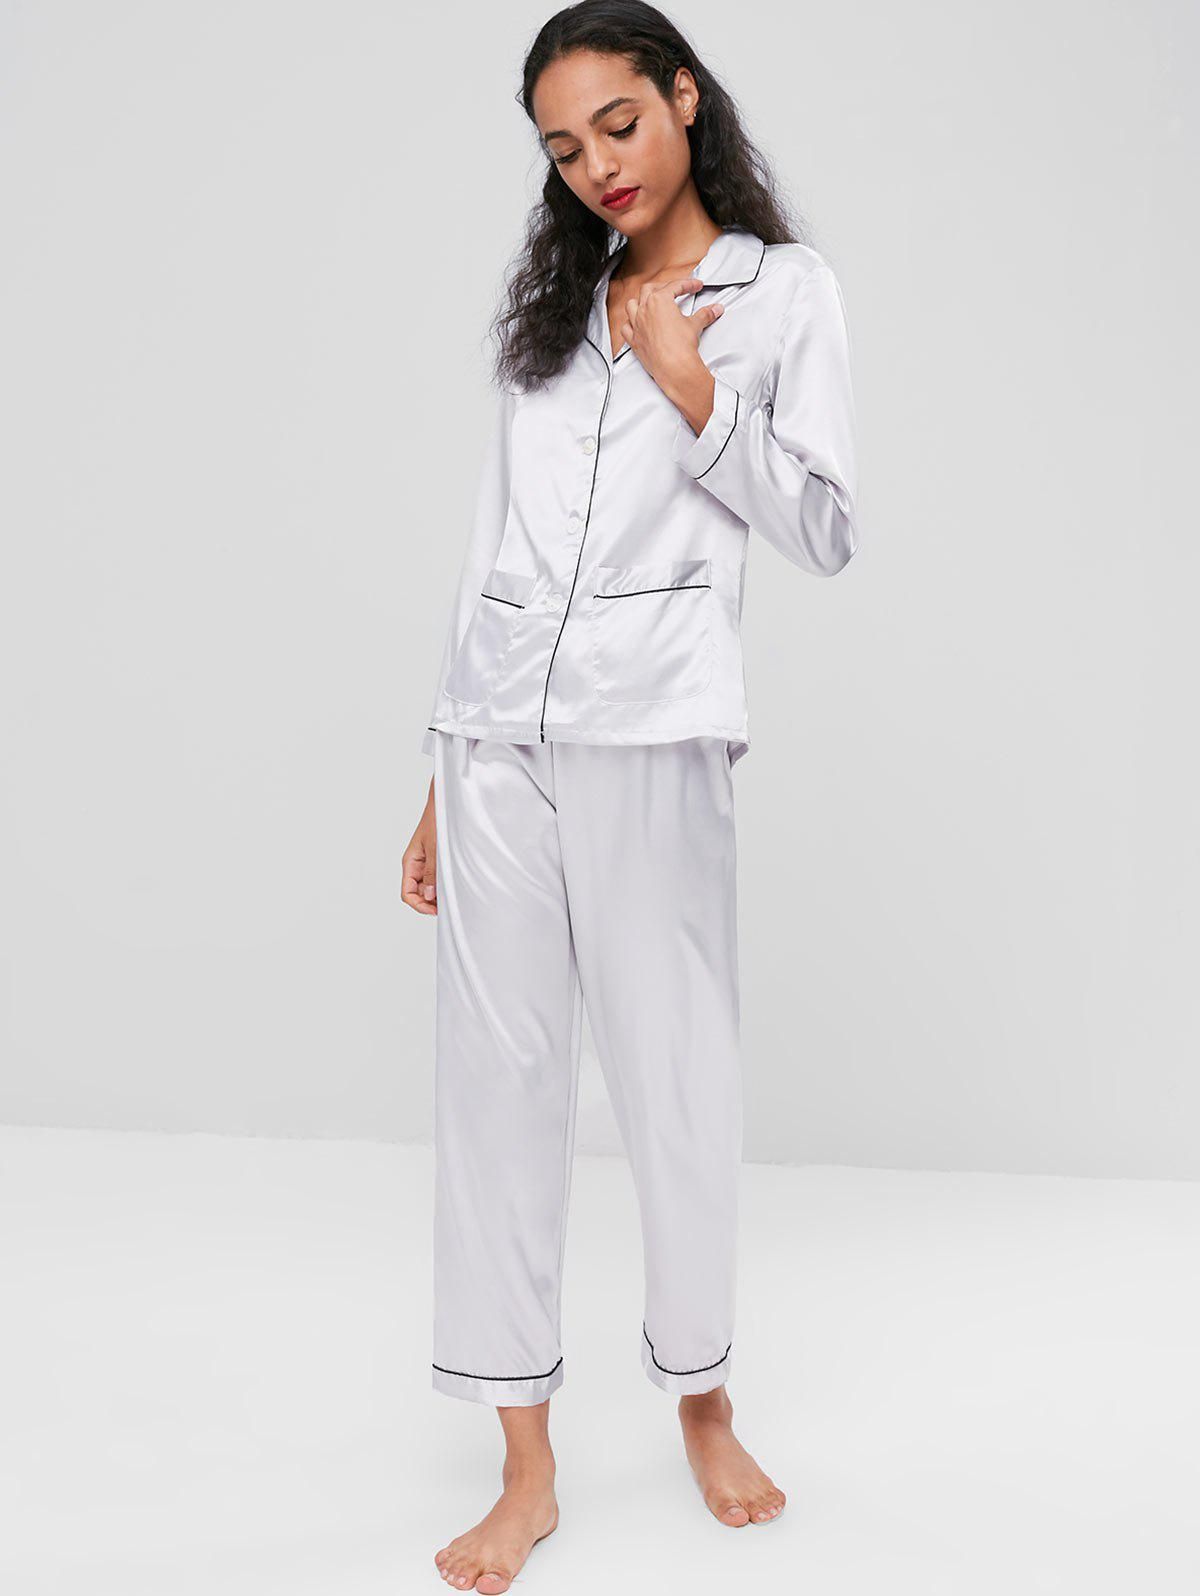 Satin Sleep Shirt and Pants Set